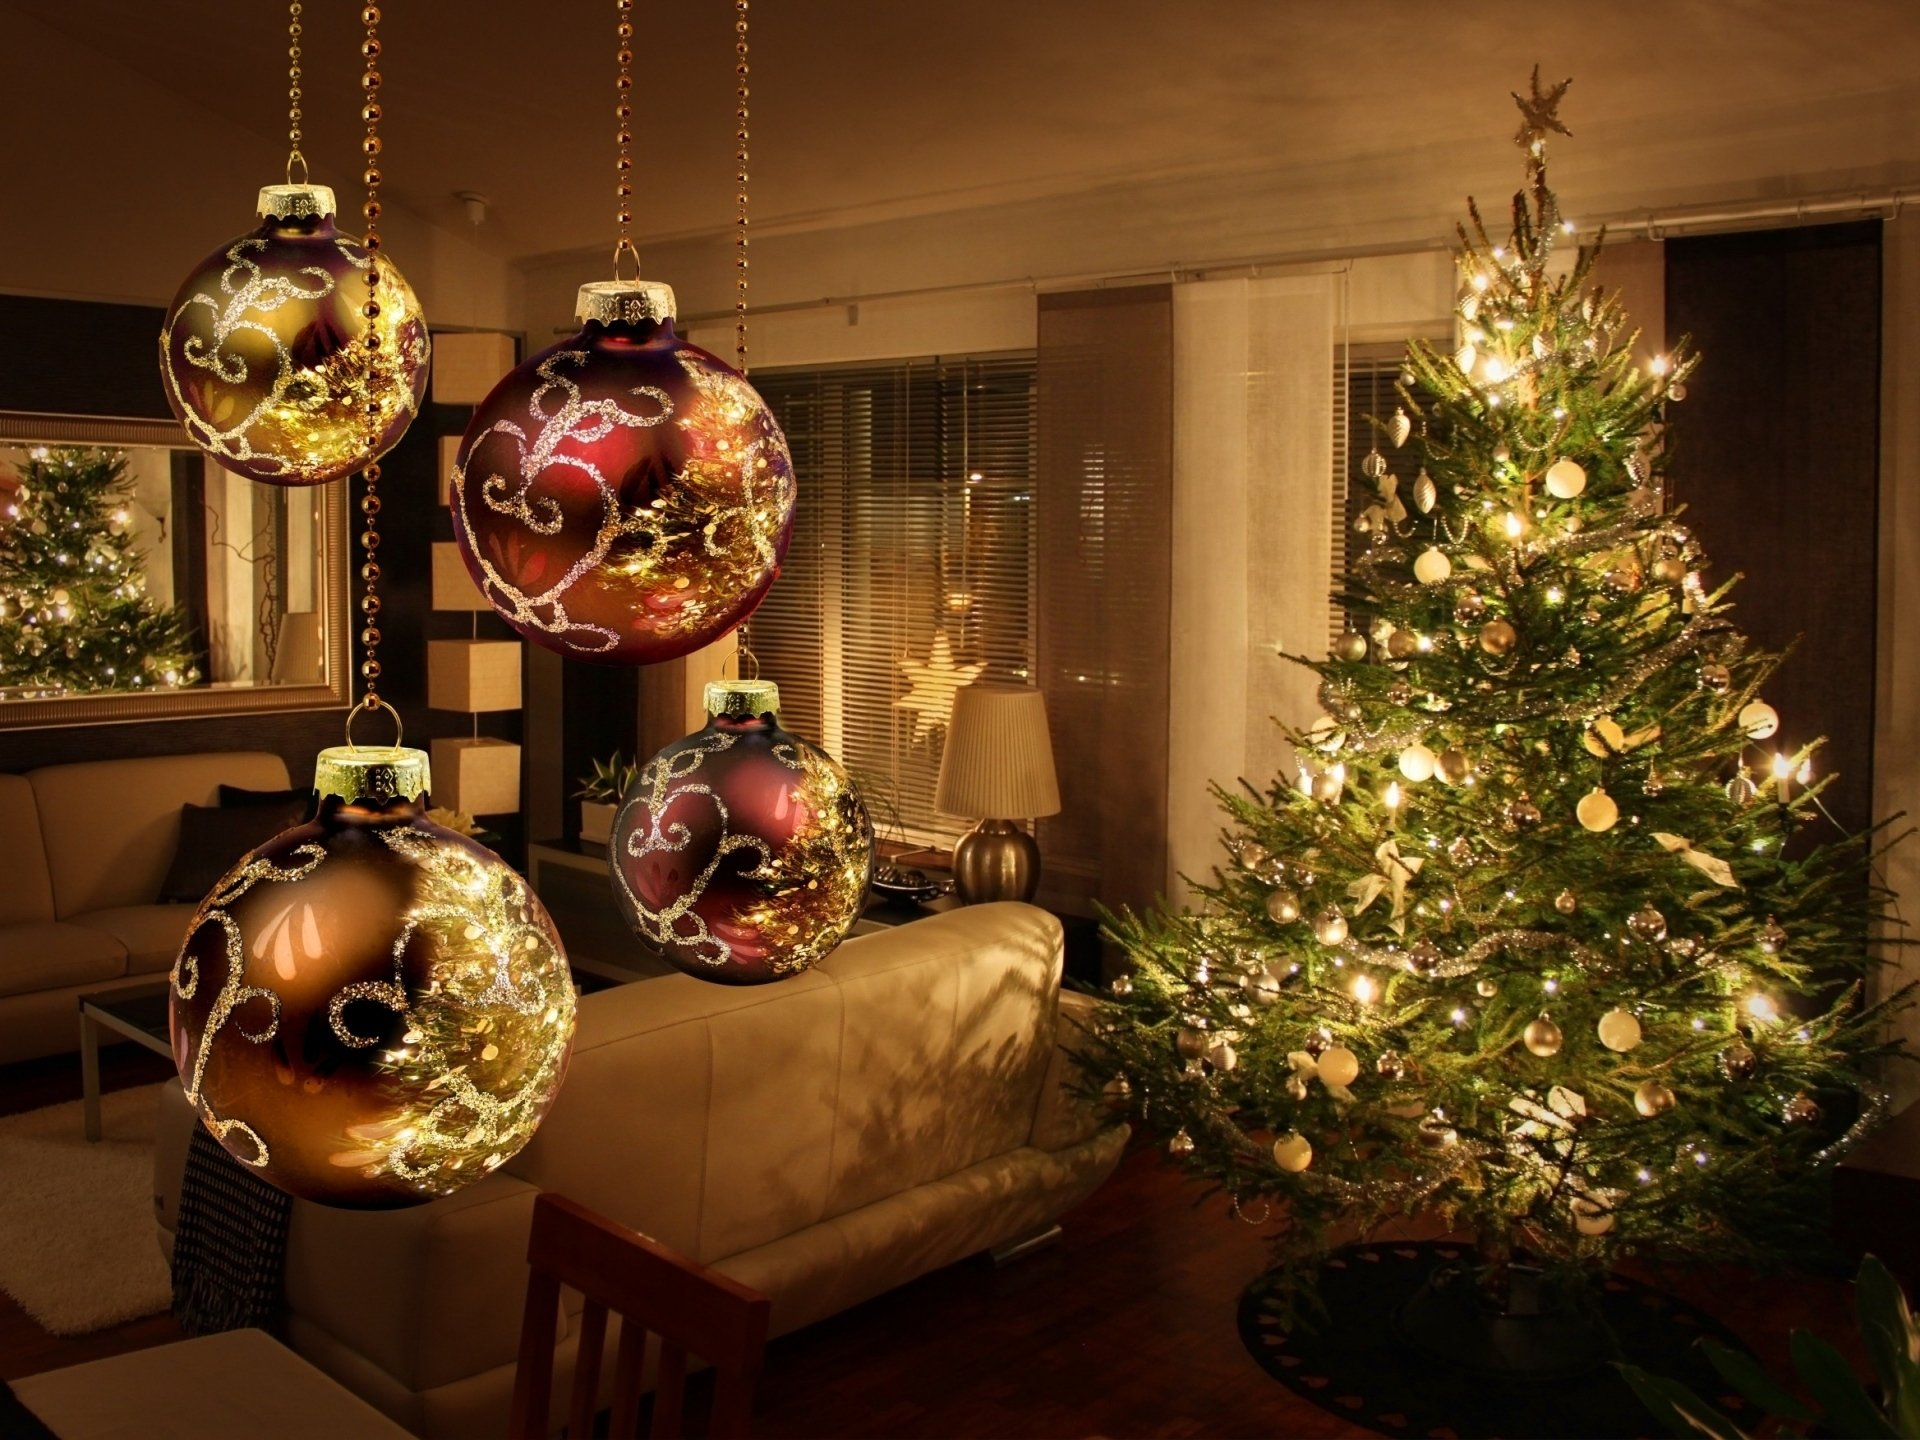 节日 - 圣诞节  Decoration Christmas Tree Bauble 房间 Ligths 壁纸